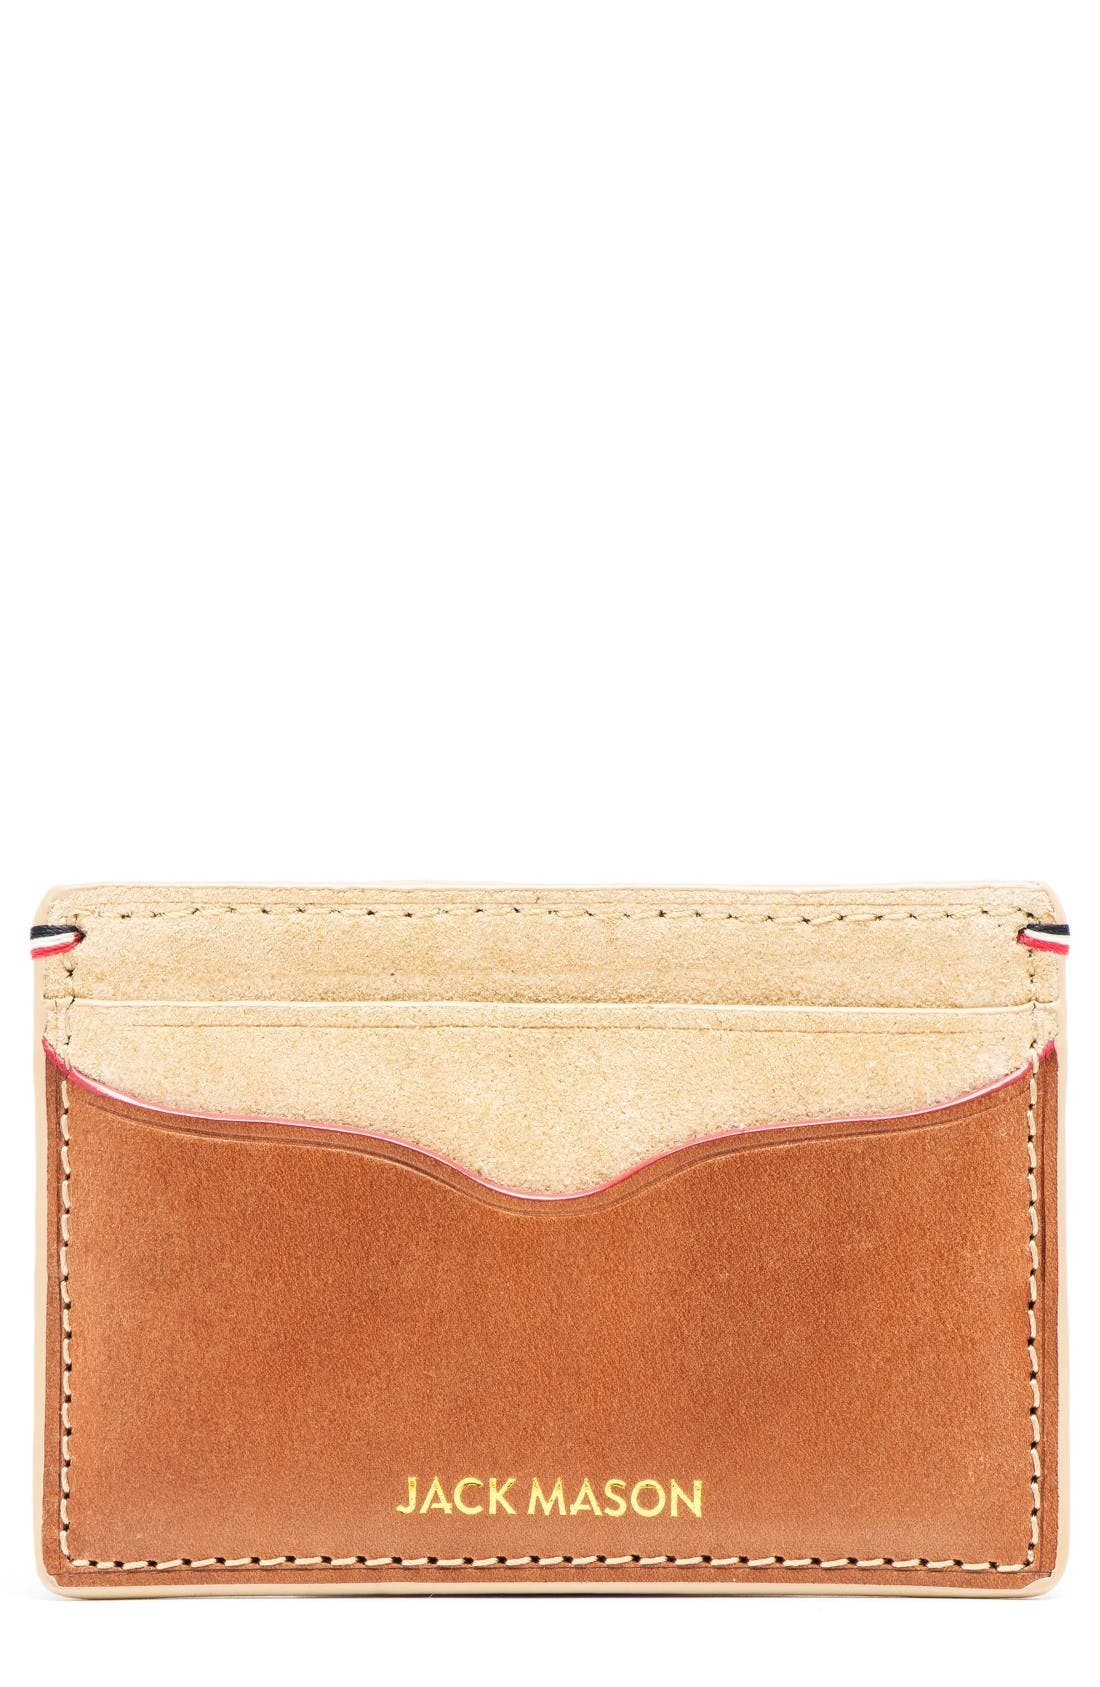 JACK MASON Suede & Leather Card Case